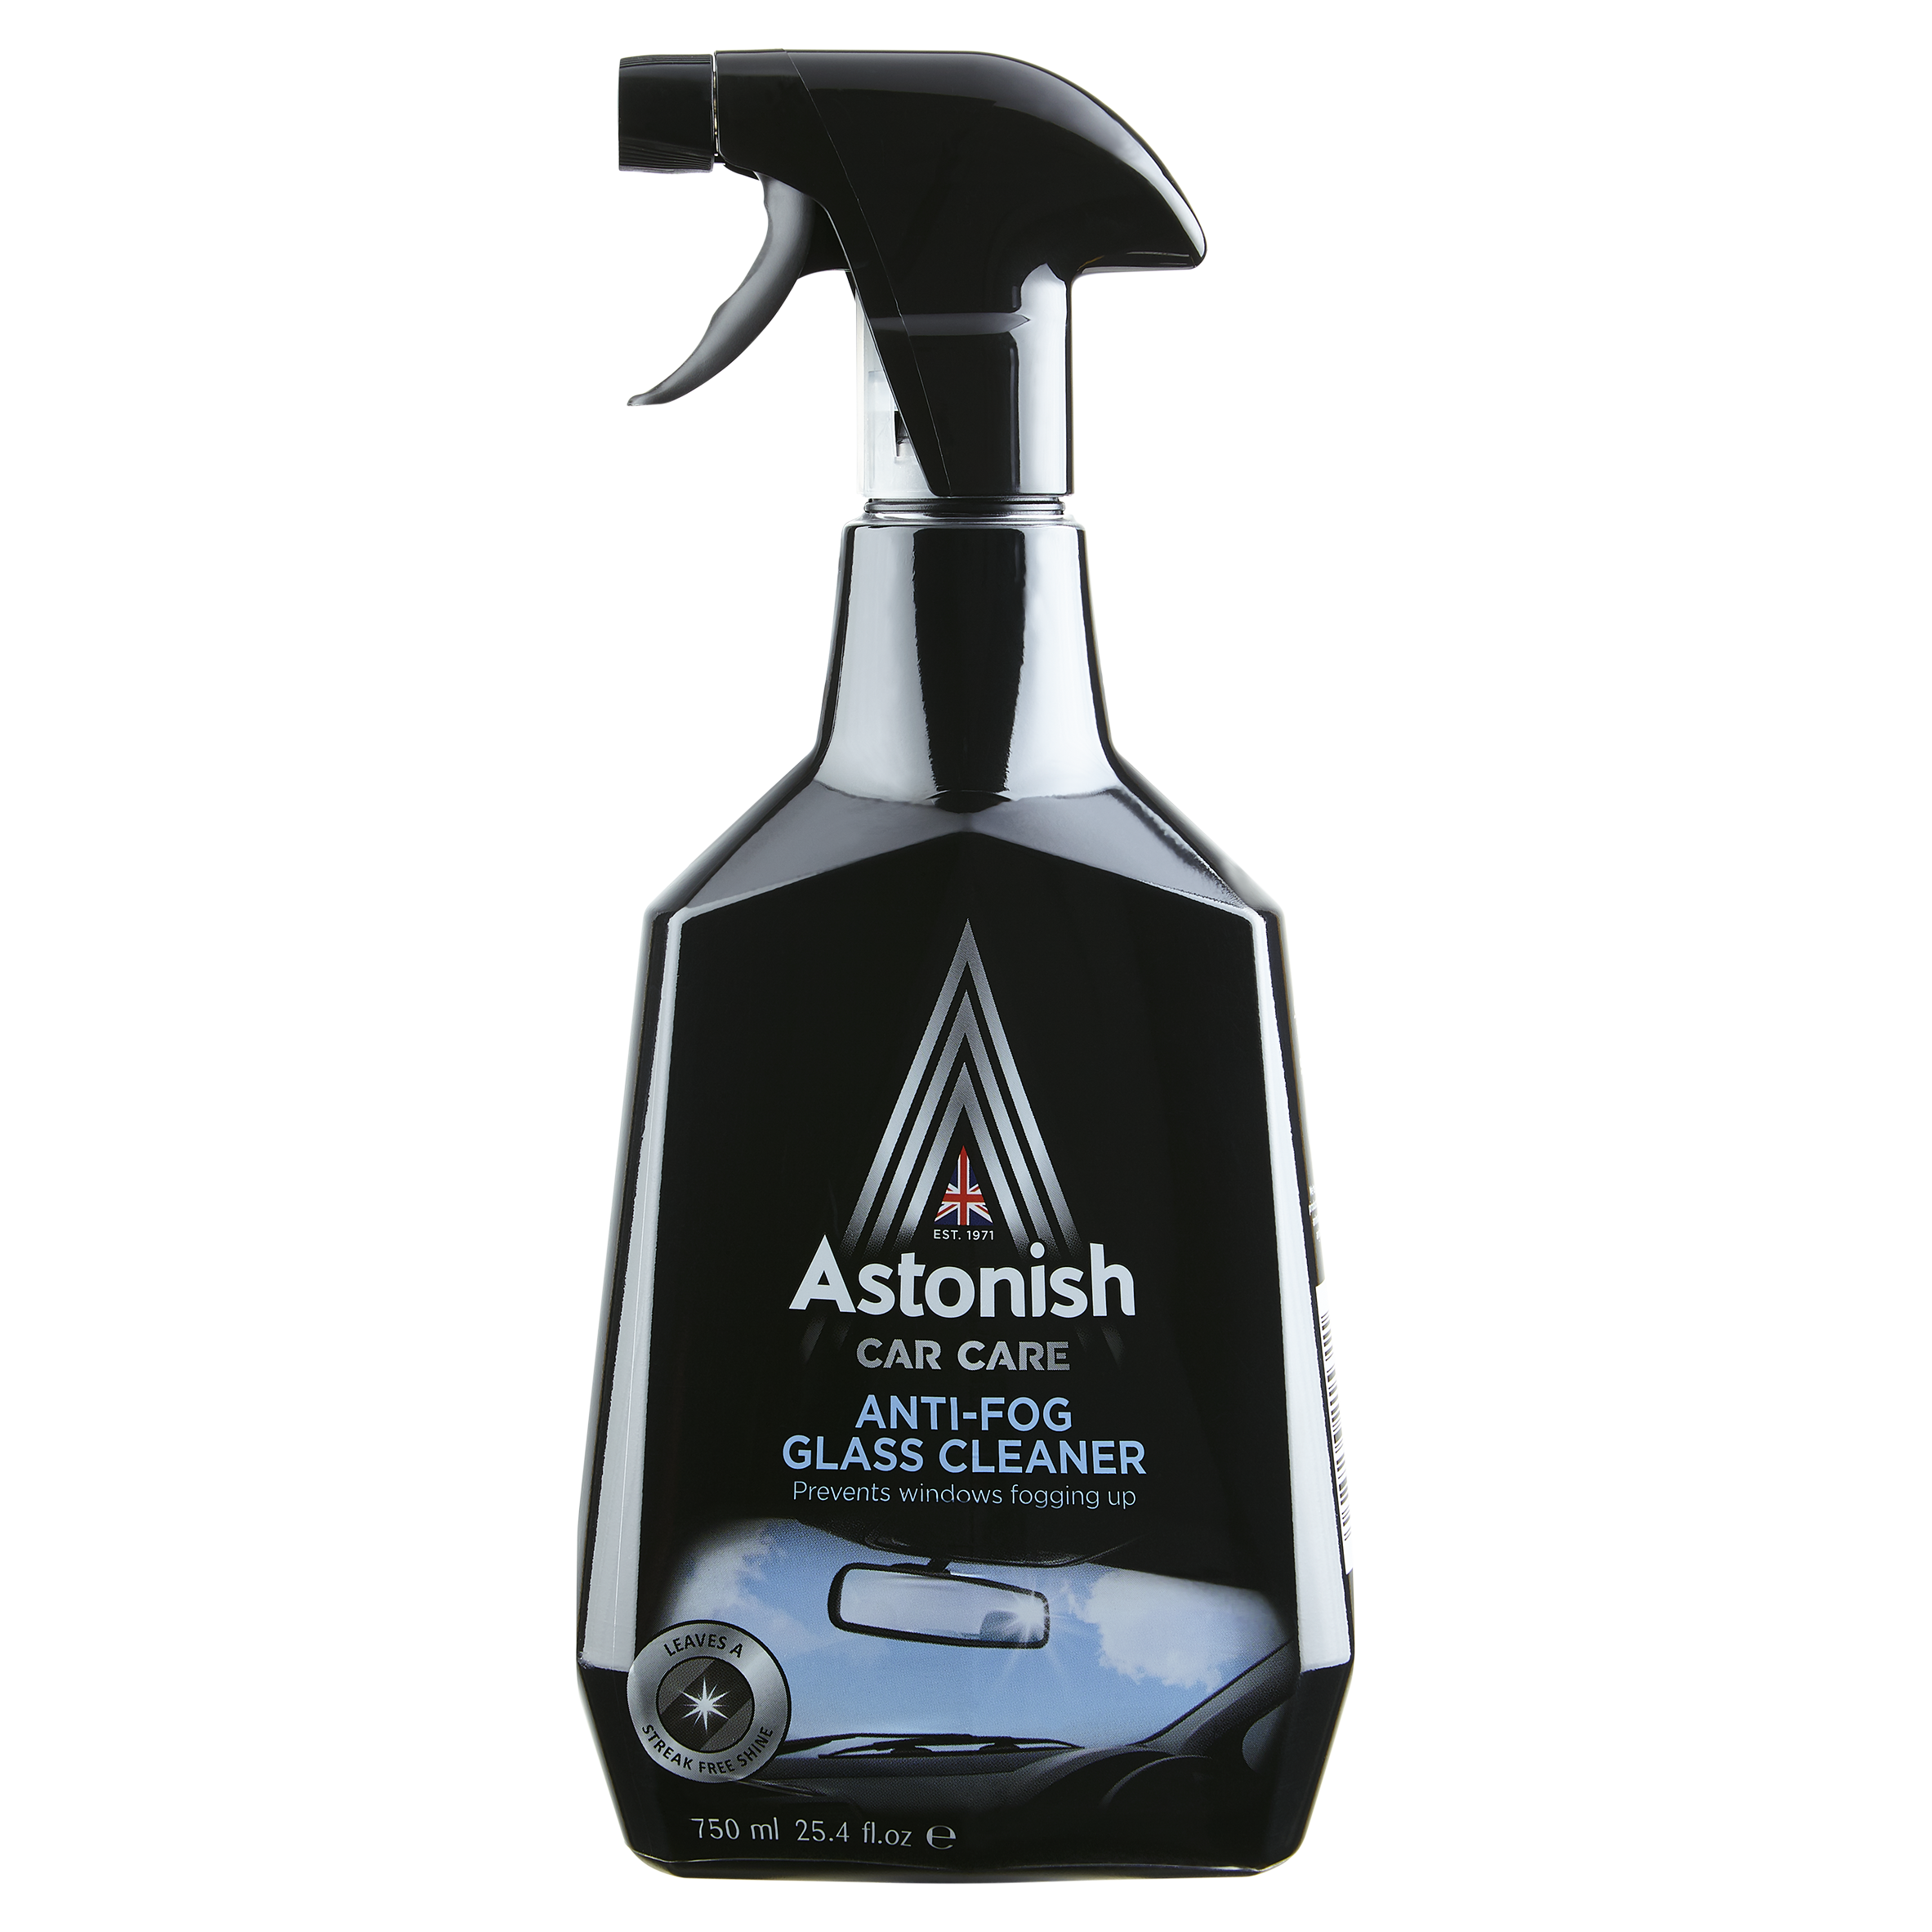 Astonish_CarCare_AntiFog_Glass_Cleaner Glass cleaner